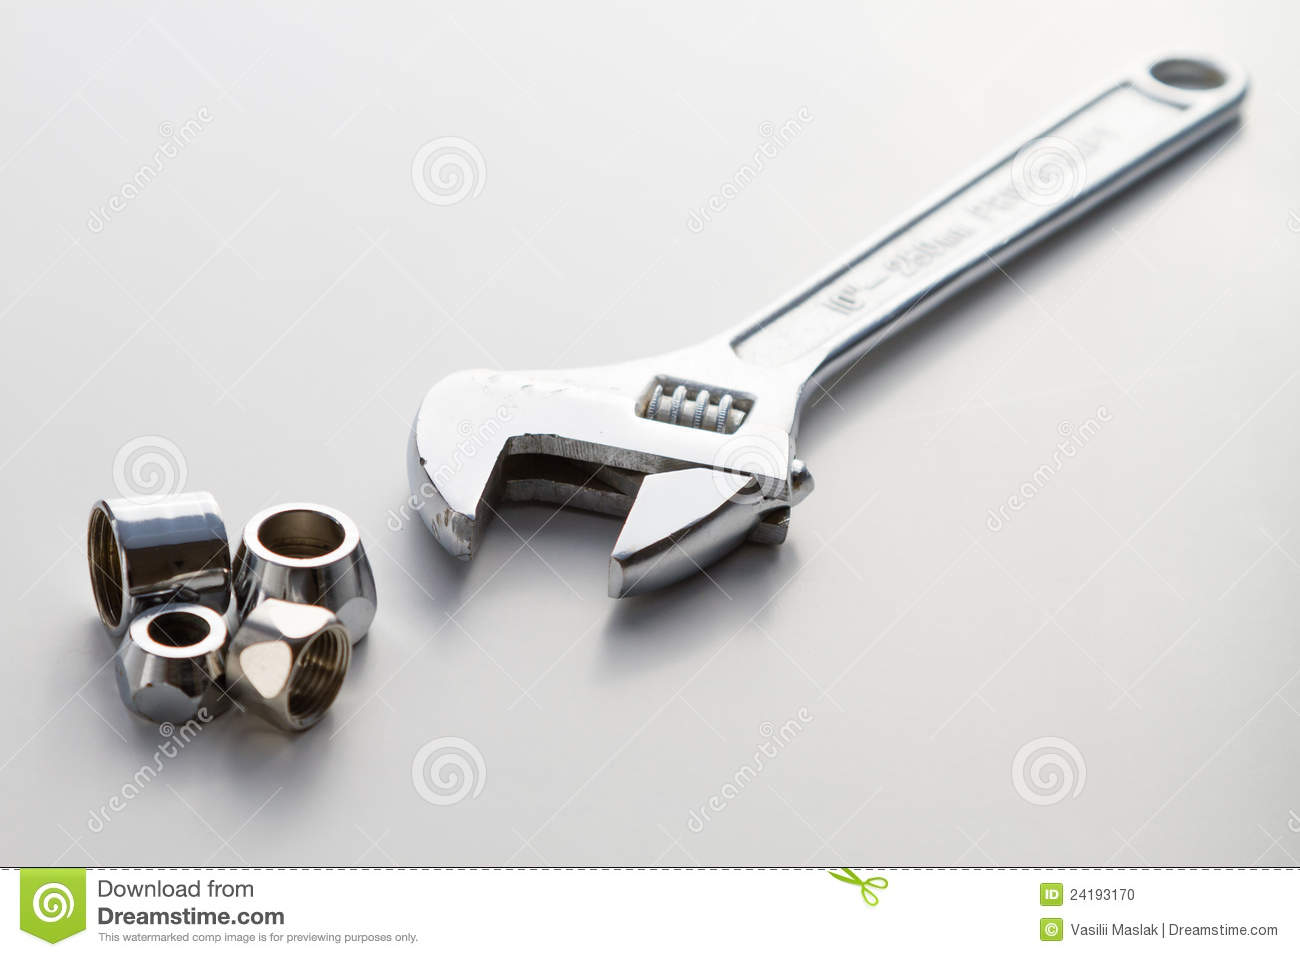 Plumbing Pipe And Adjustable Spanner Monkey Wrench Stock Photo ...